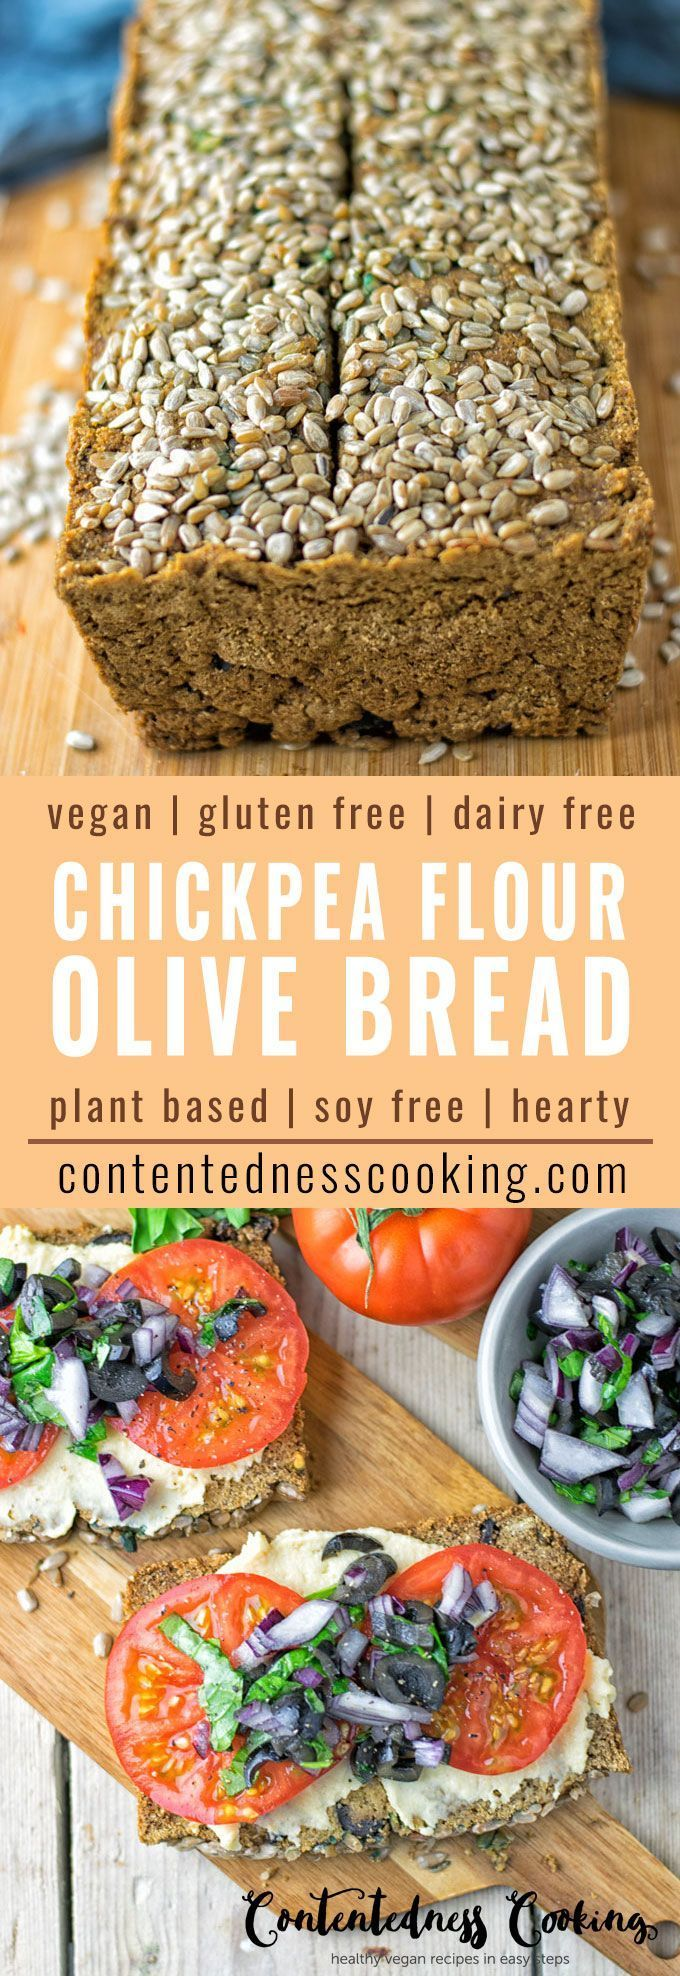 My Olive Chickpea Flour Bread recipe brings you a fresh homemade vegan and gluten free bread with extra flavor. Using my Olive Hummus in combination with chickpea flour results in a hearty taste that will blow you away. And you make this homemade bread sensation from only 5 ingredients.